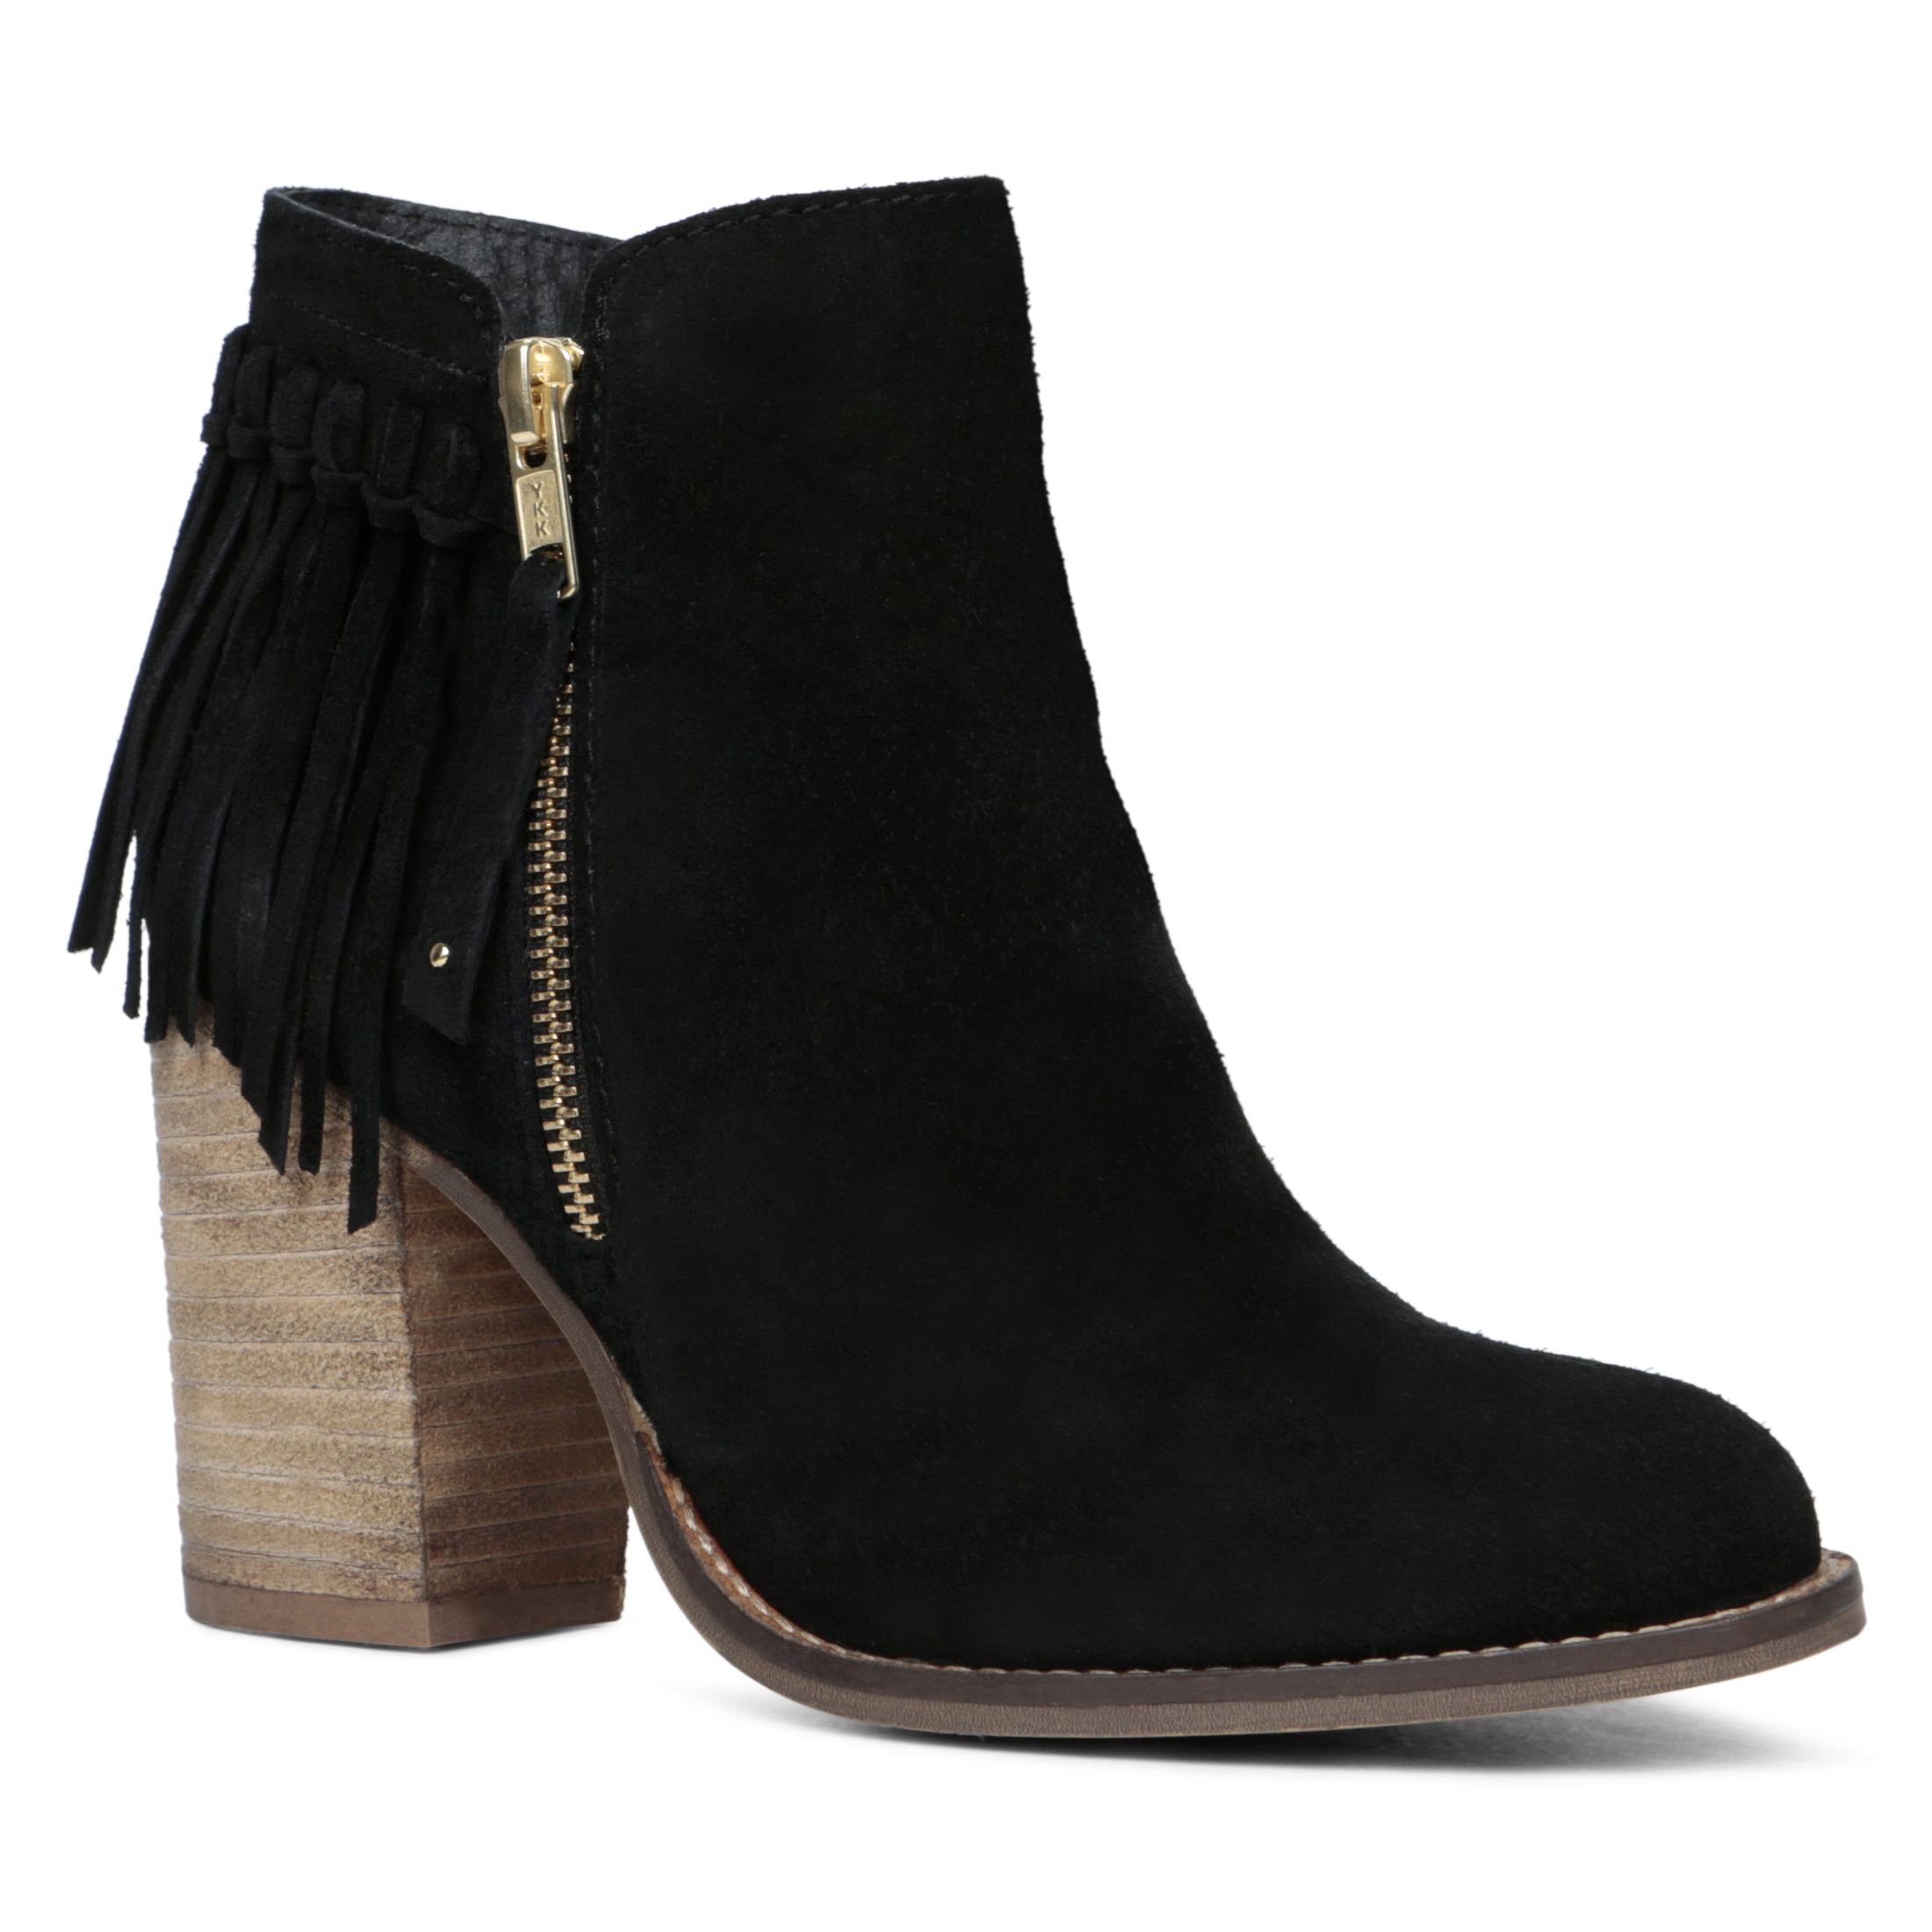 Fringe boots - results from brands Minnetonka, Pleaser, SODA, products like Minnetonka Venice' Fringe Moccasin Bootie (Women) at Nordstrom Rack, Matisse Womens Lombard Fringe Boots, Women's Poetic Licence Boho Fantasies Fringe Ankle Boot - Black Leather Boots.